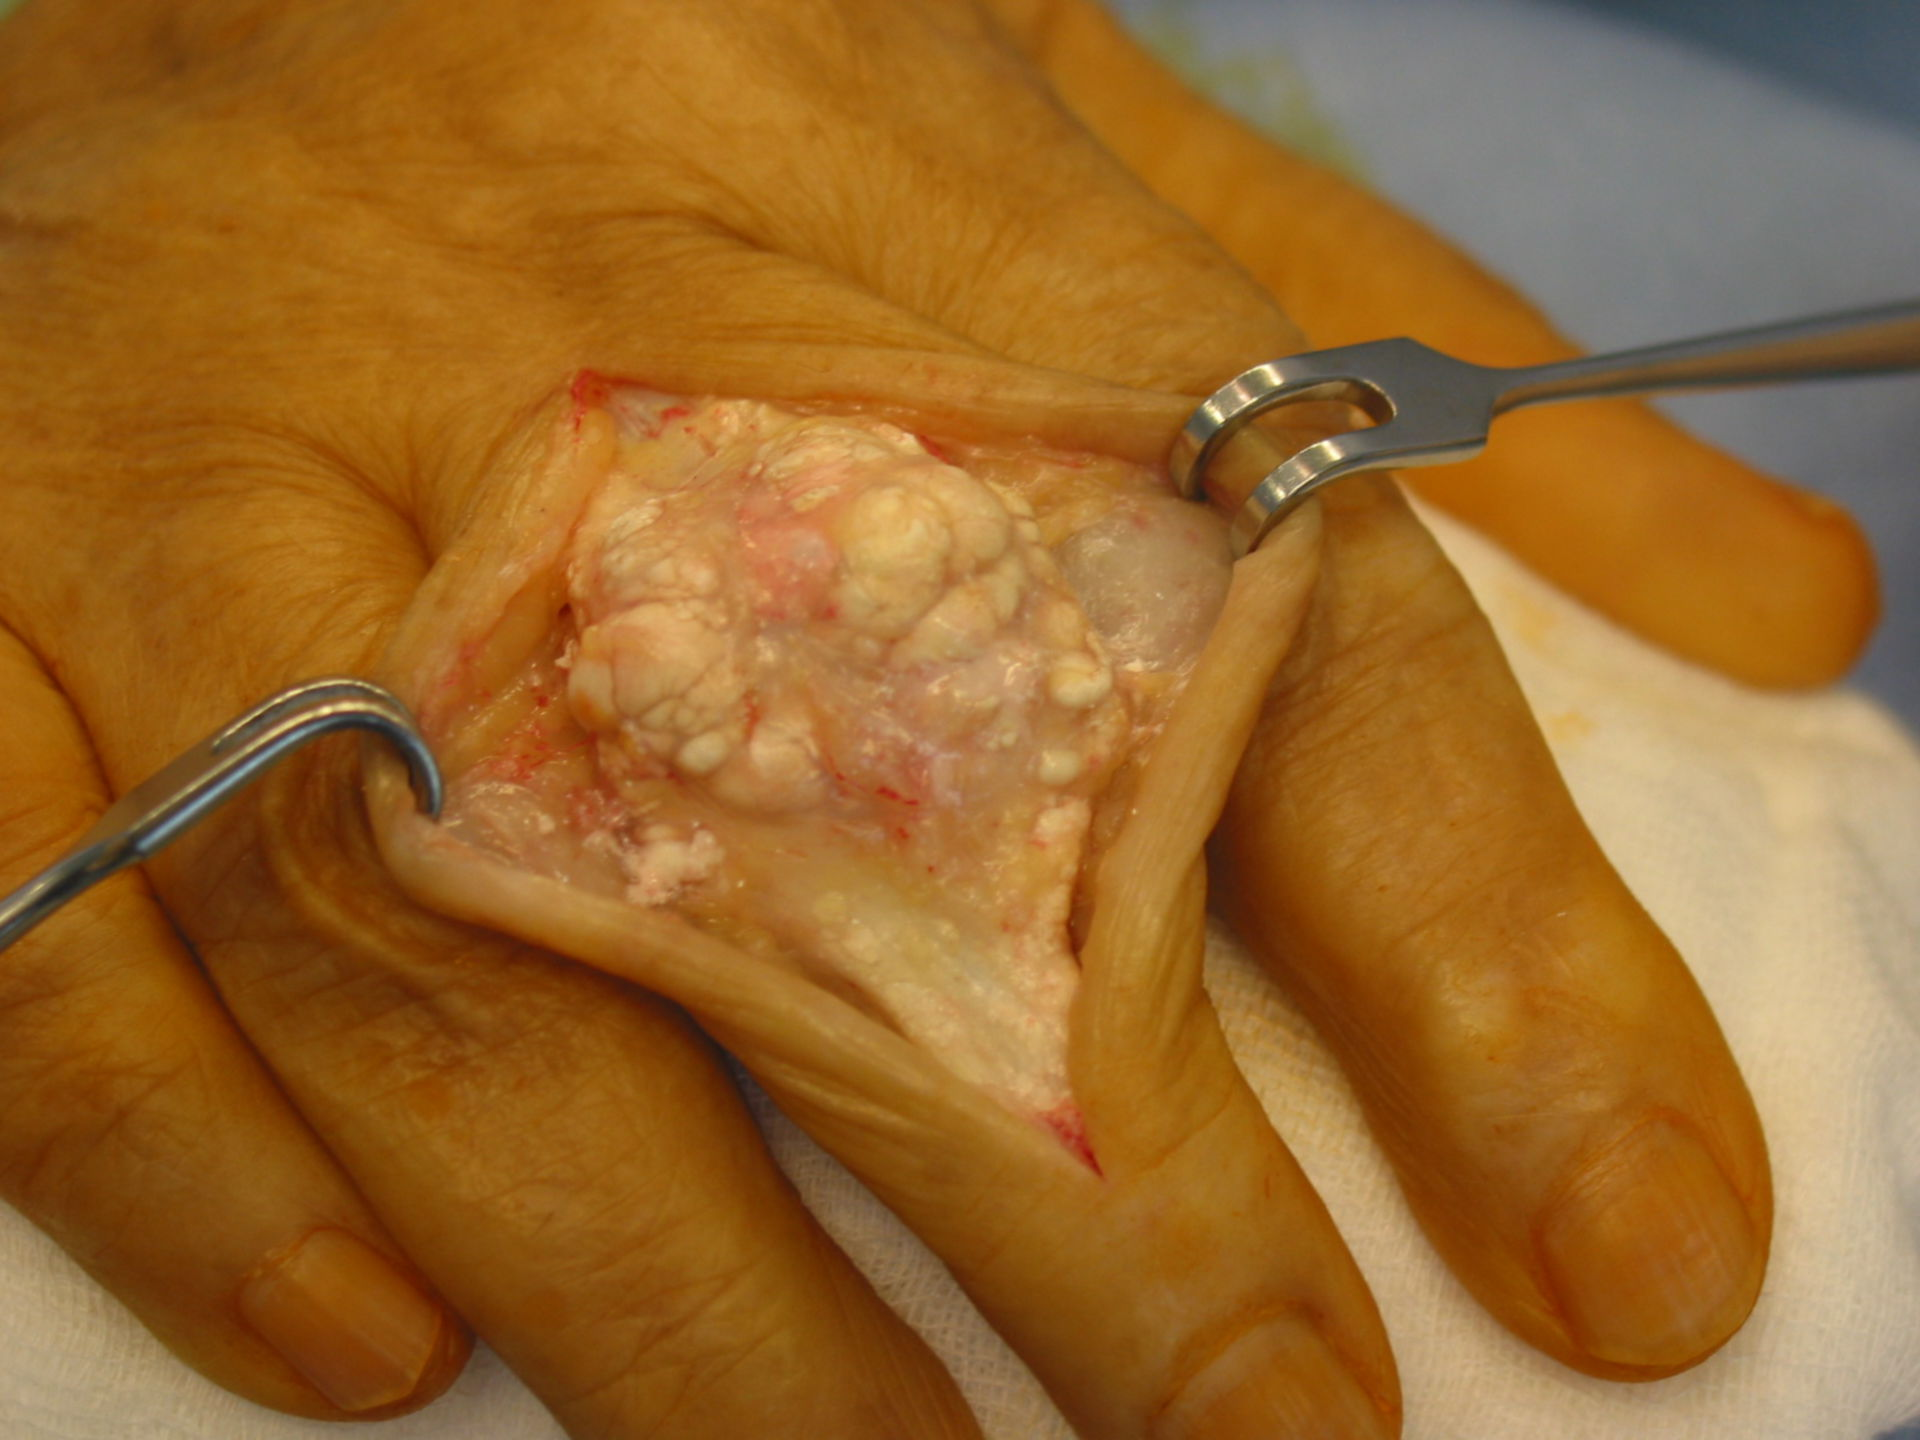 Arthritis urika (gout) in the hand (opened up)